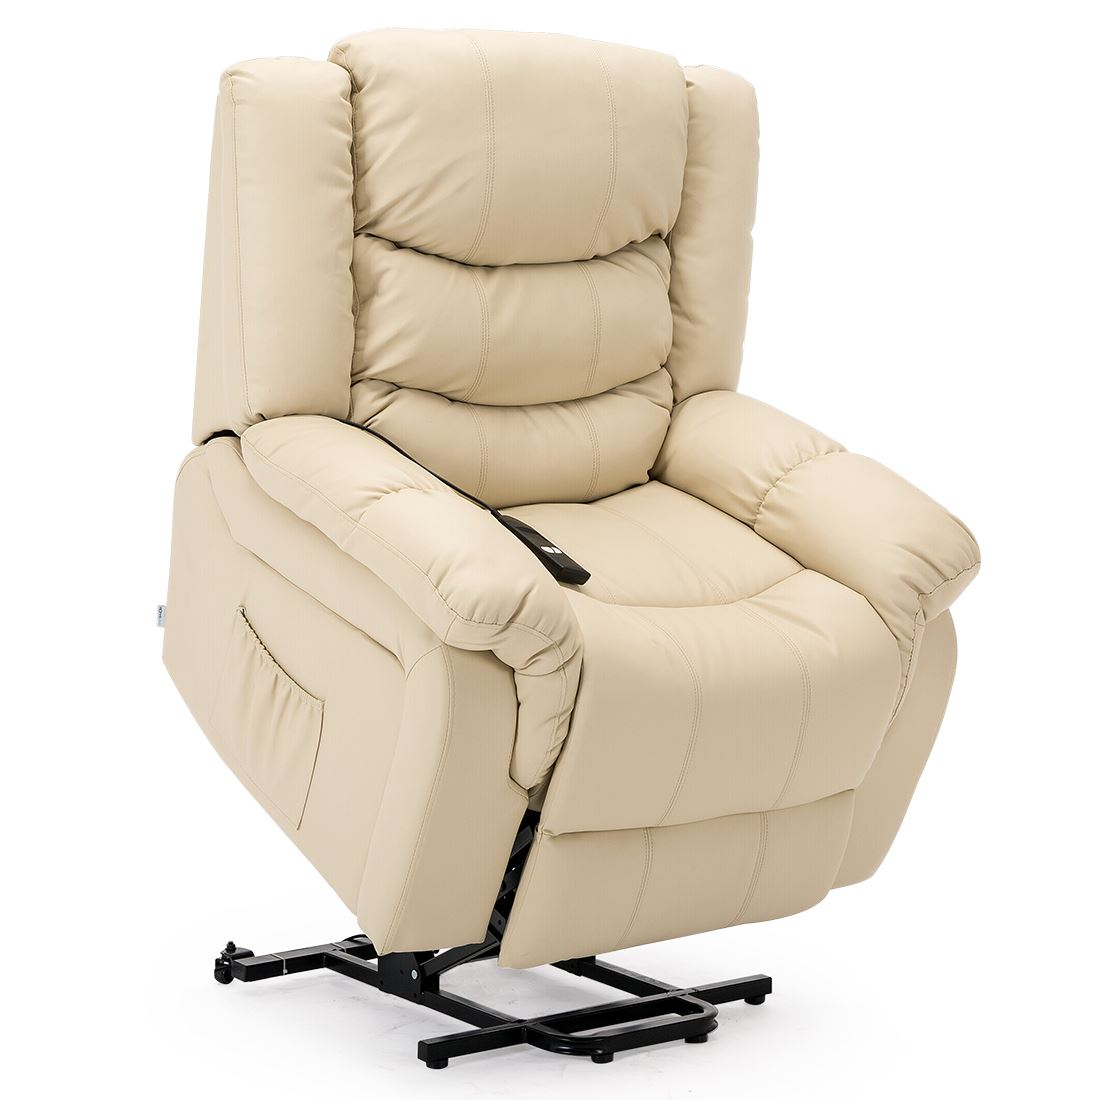 SEATTLE-ELECTRIC-RISE-REAL-LEATHER-RECLINER-ARMCHAIR-SOFA-HOME-LOUNGE-CHAIR thumbnail 27